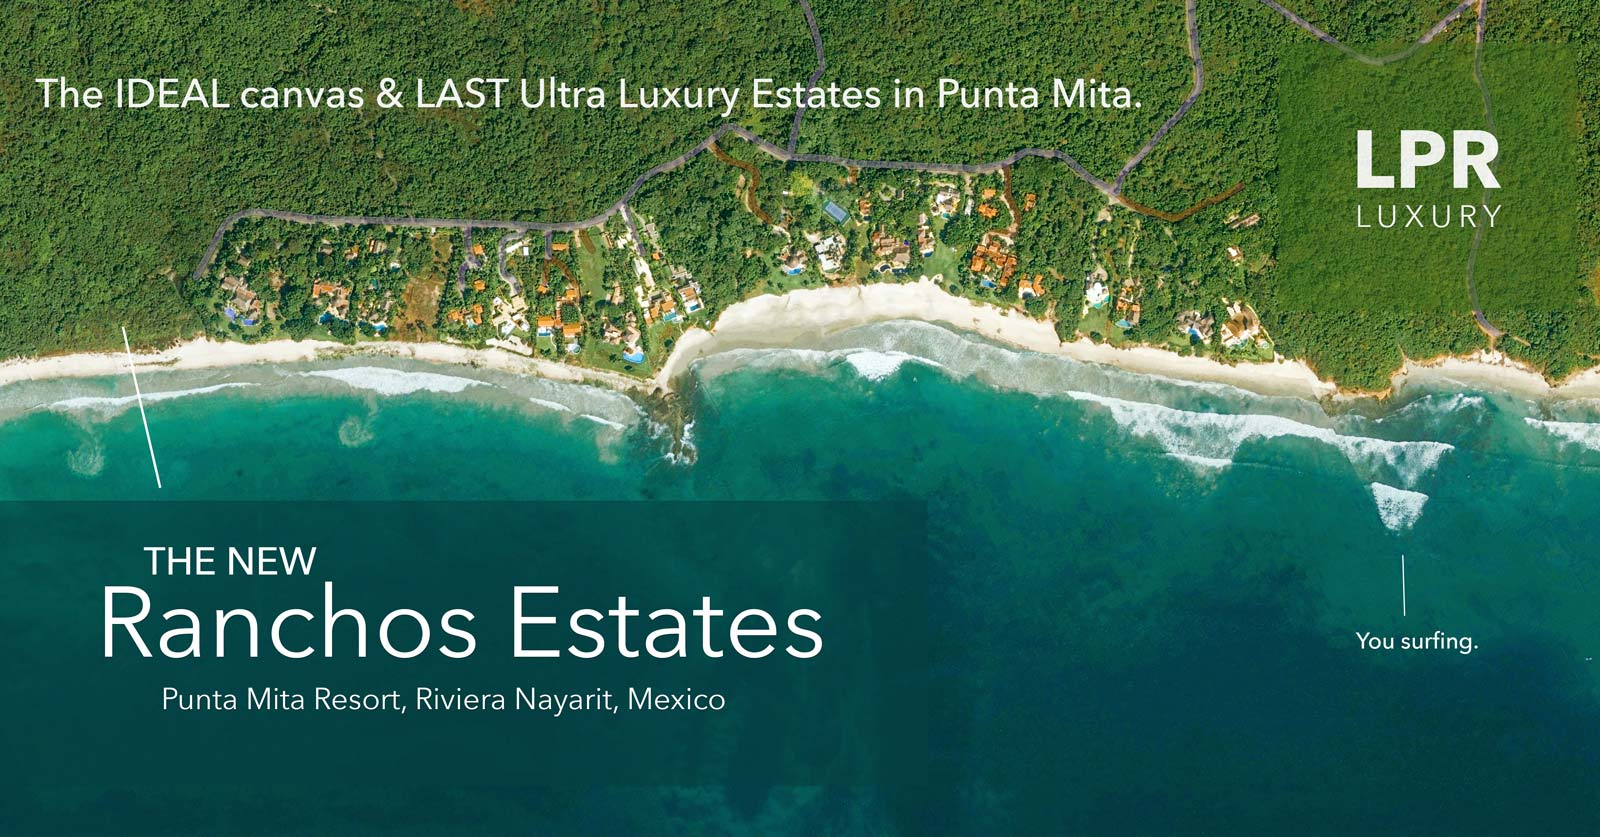 The New Ranchos Estates - The las Ultra Luxury Canvas to build your dream home.